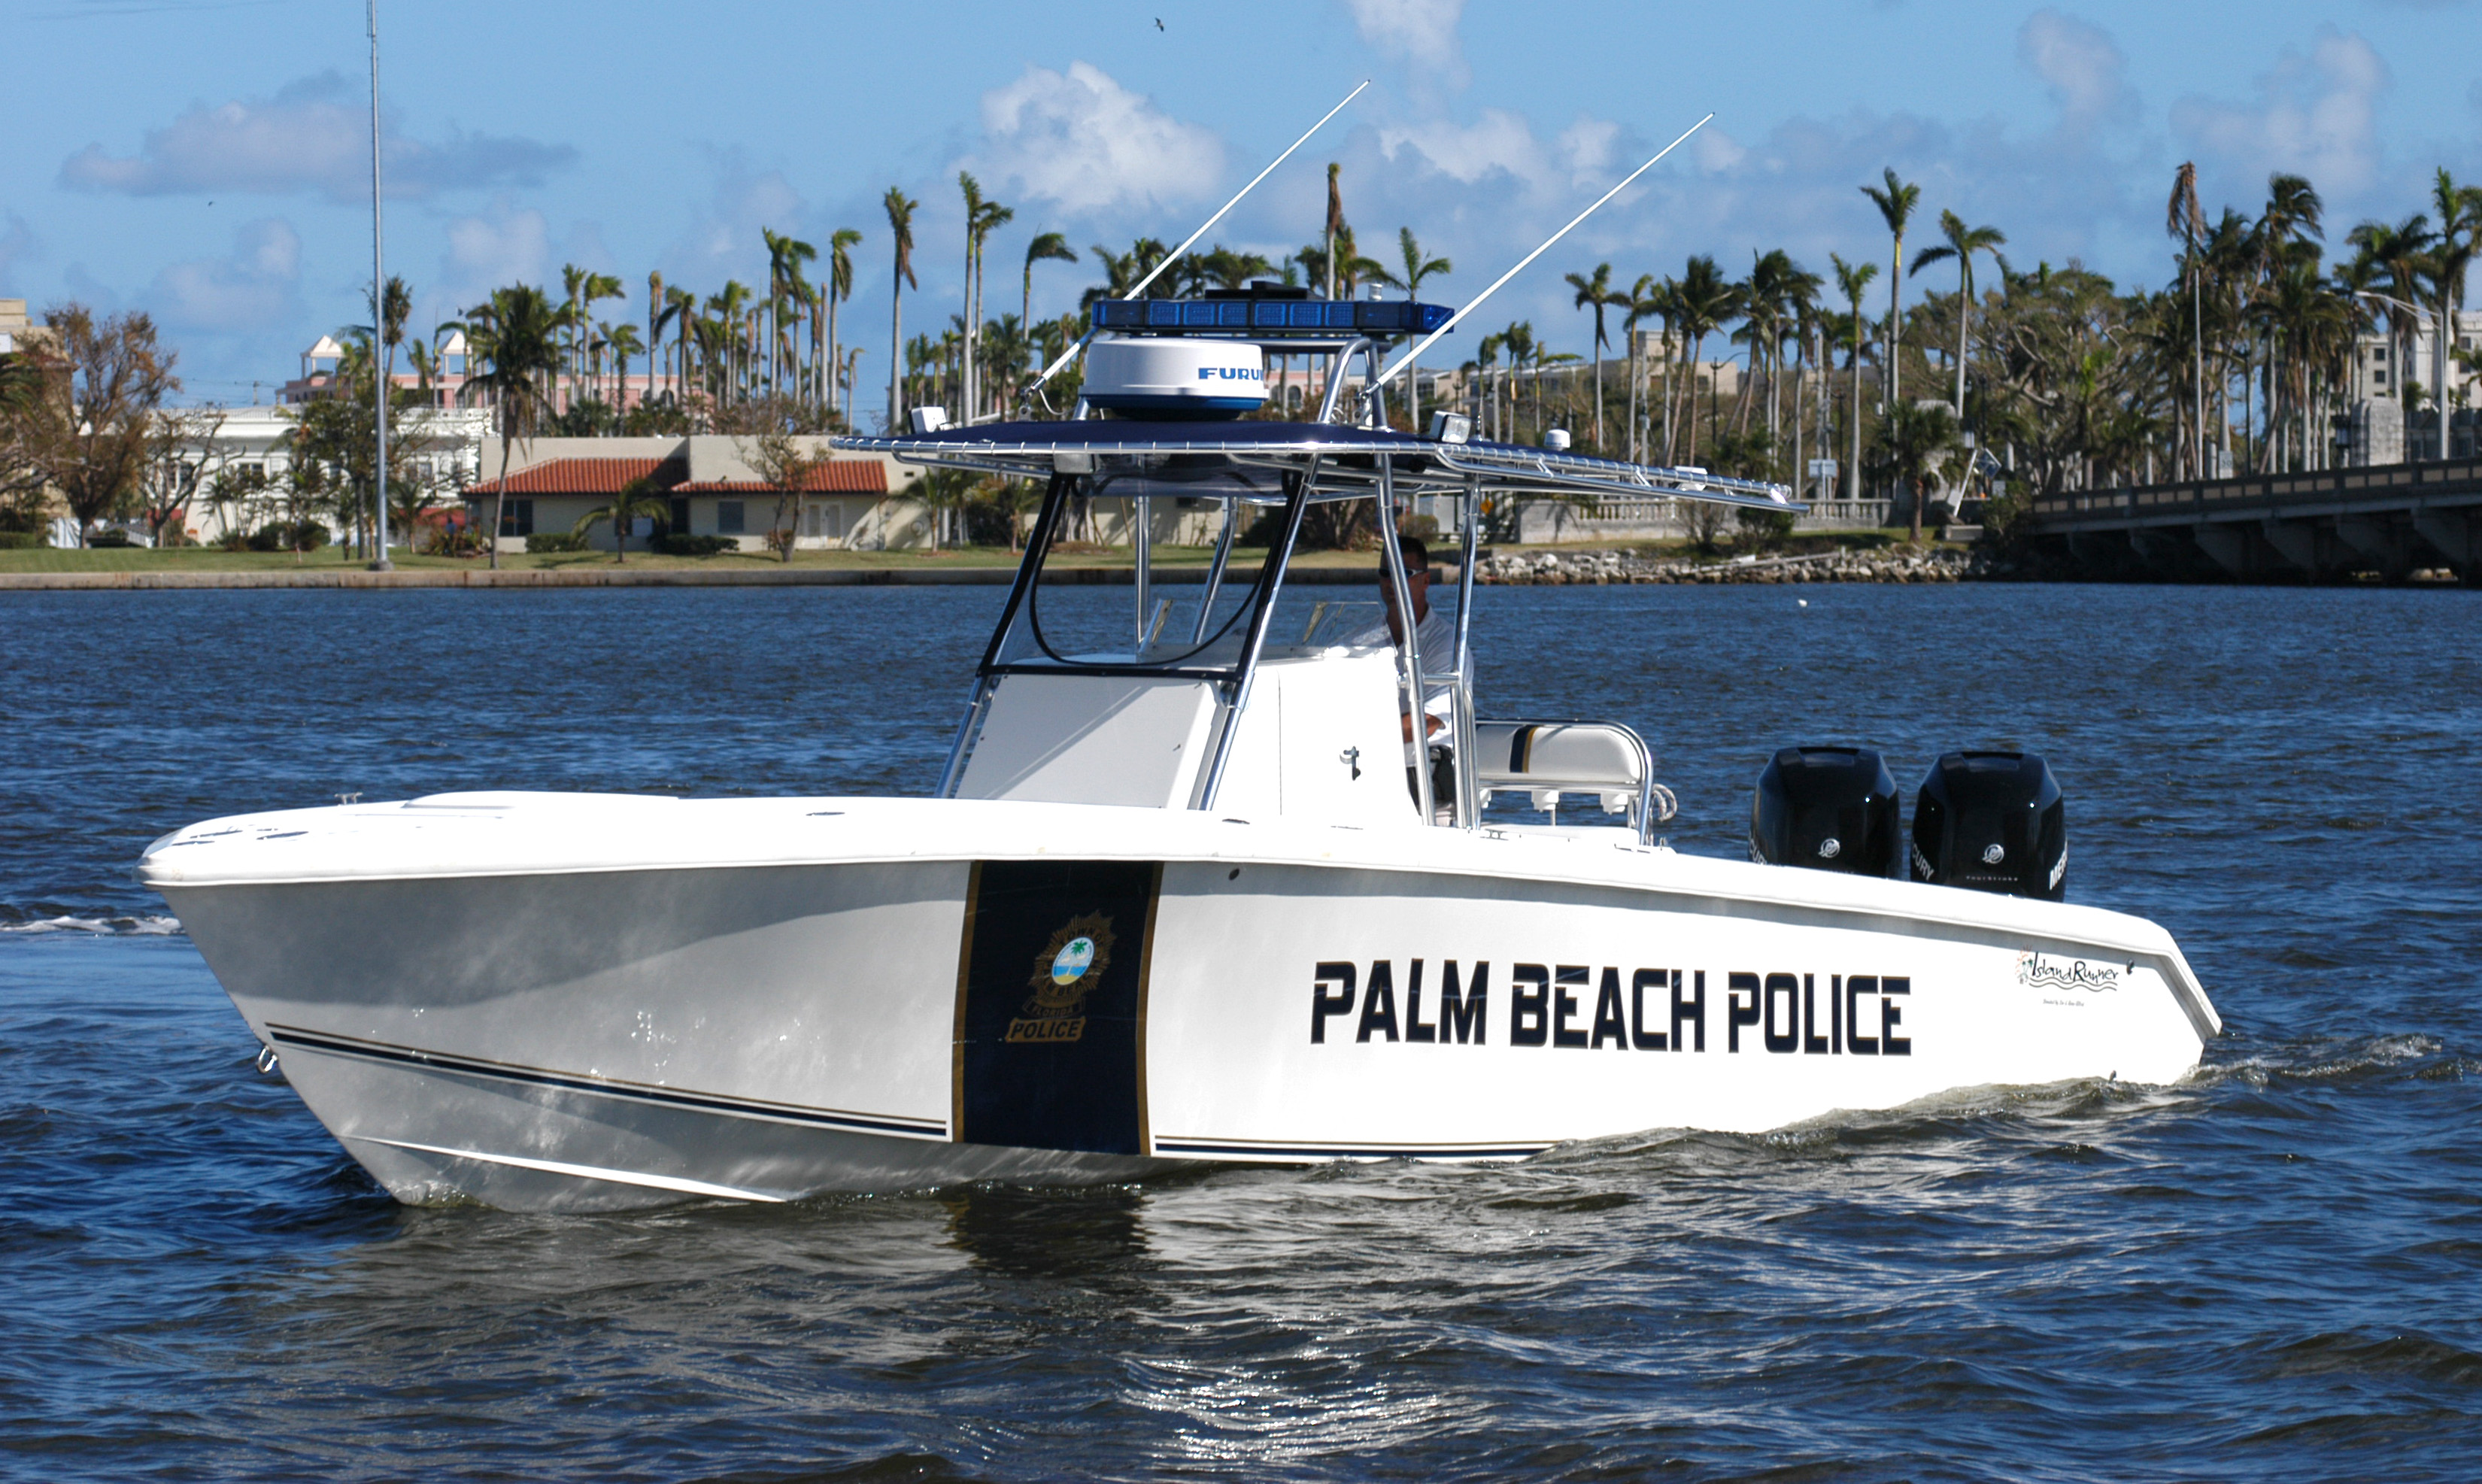 New Police Boat One.jpg